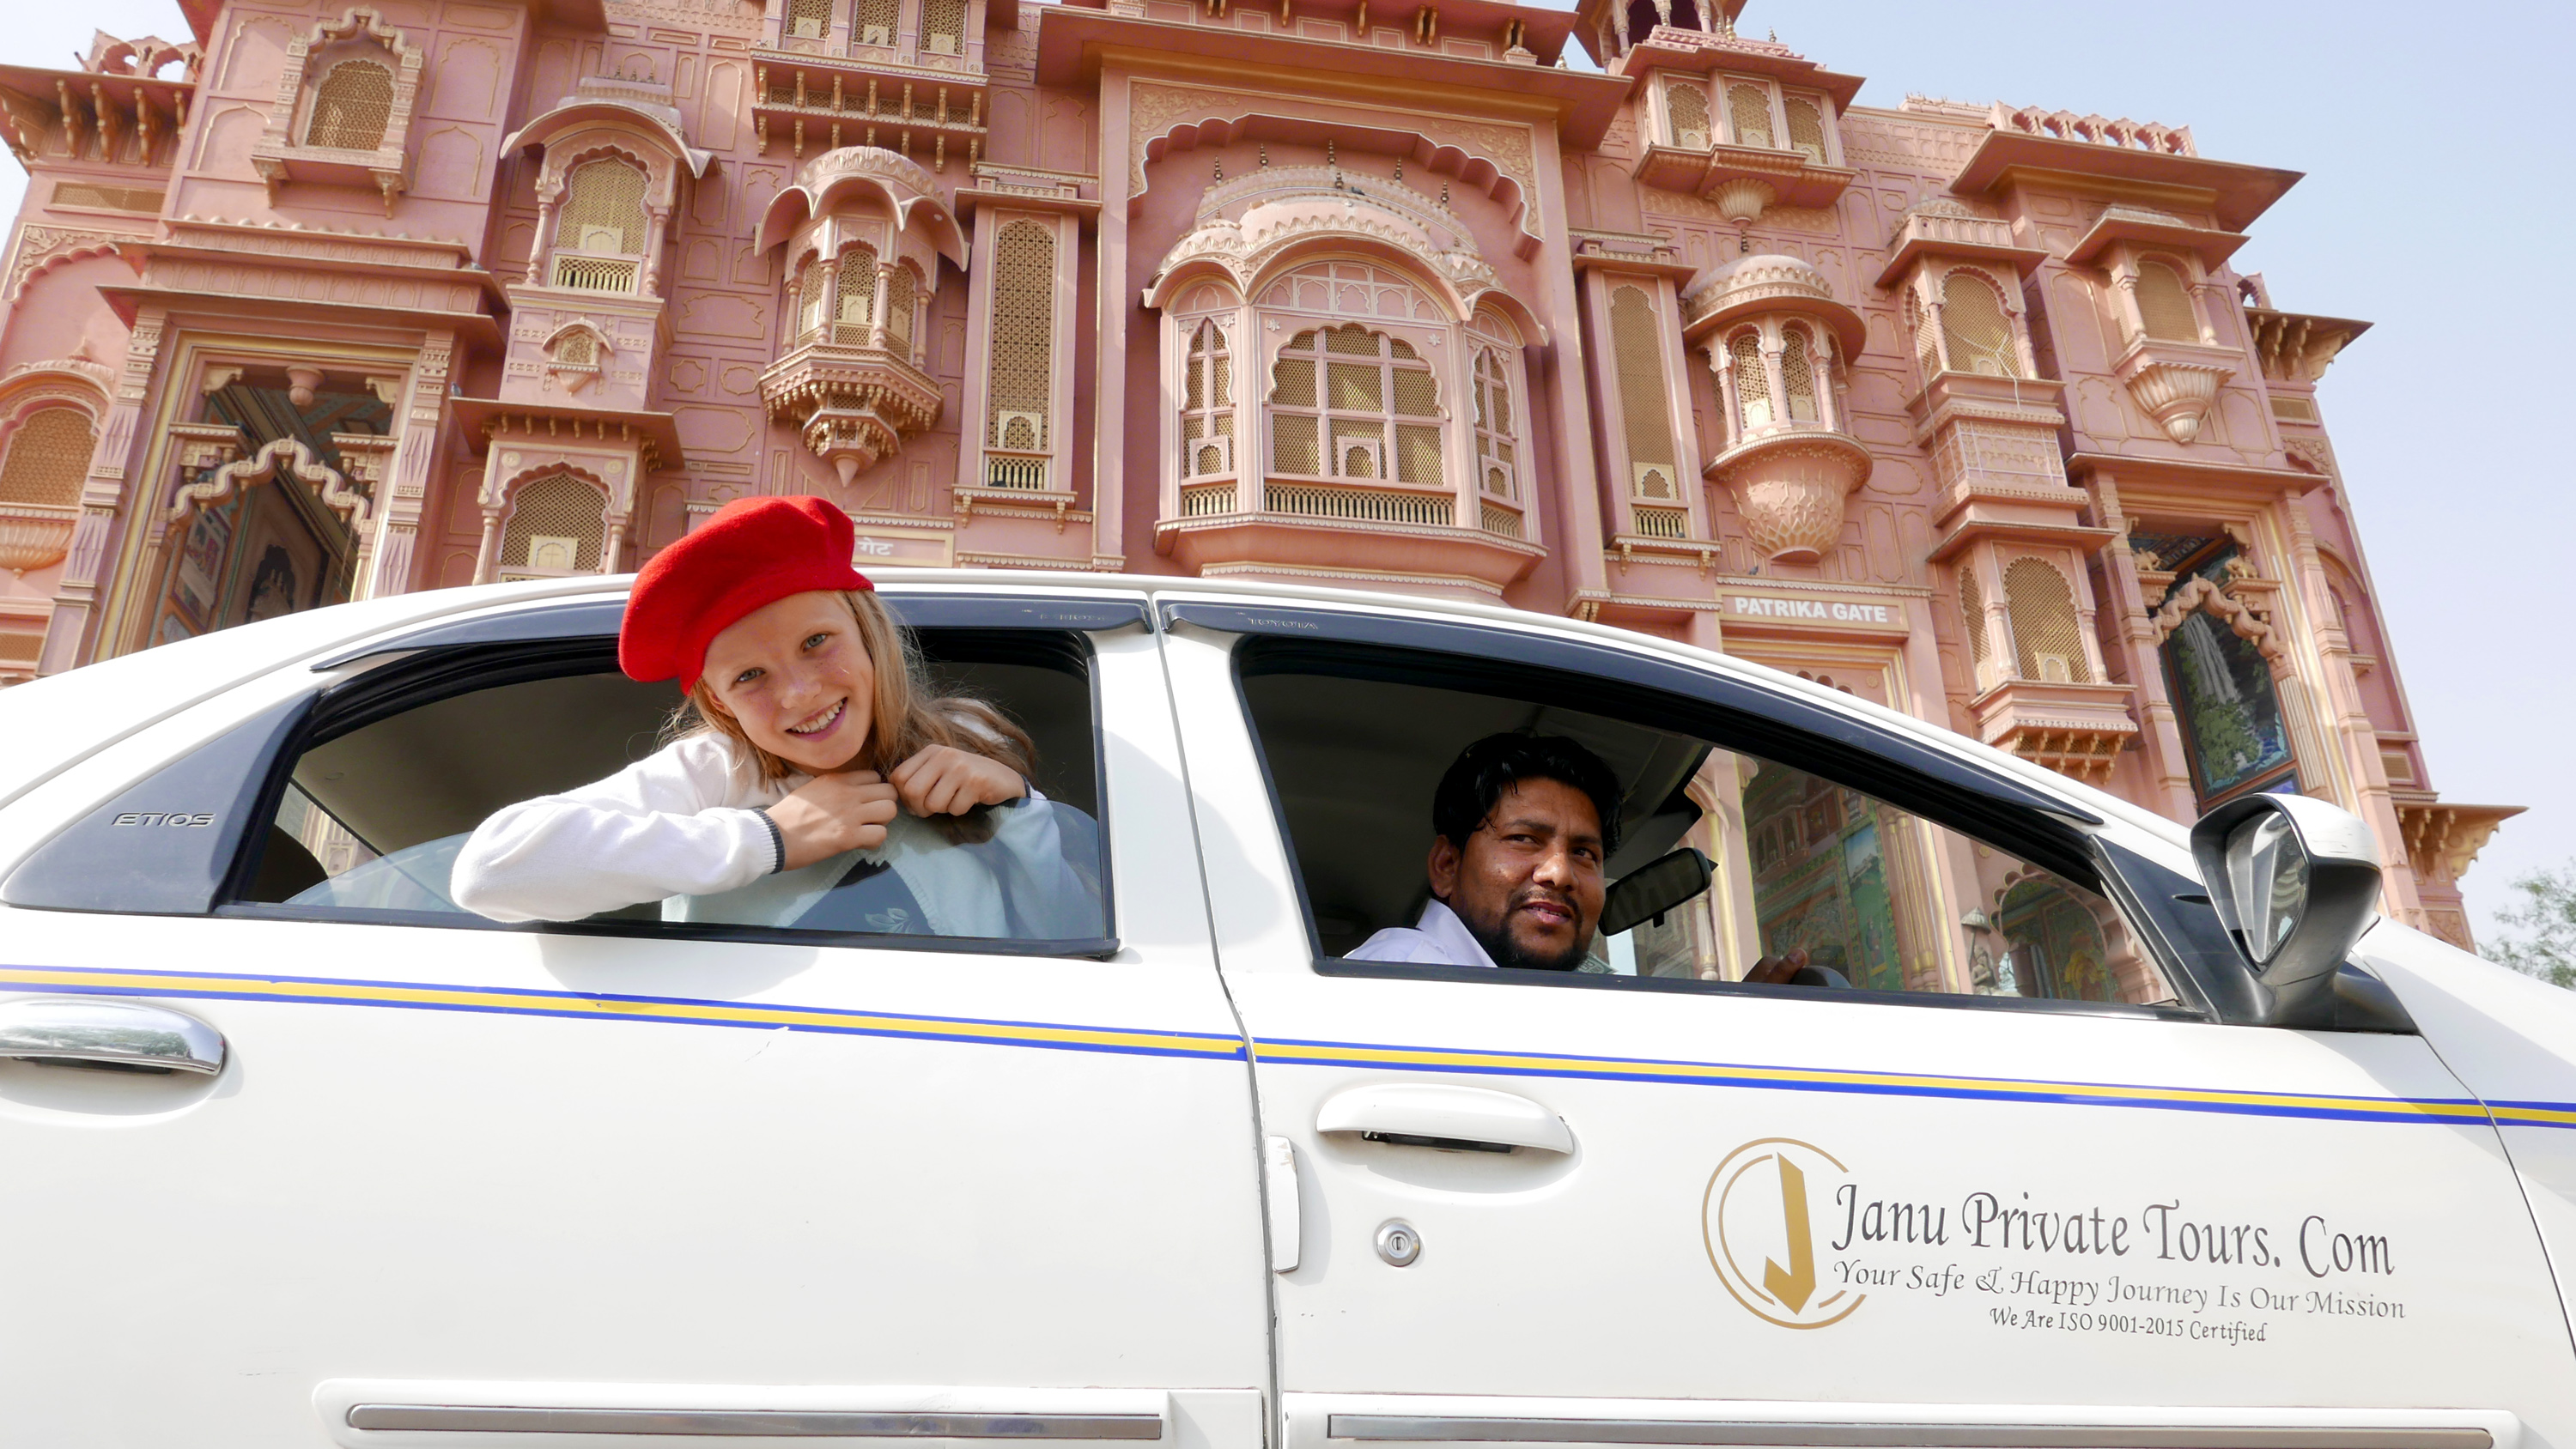 Janu private tours Jaipur